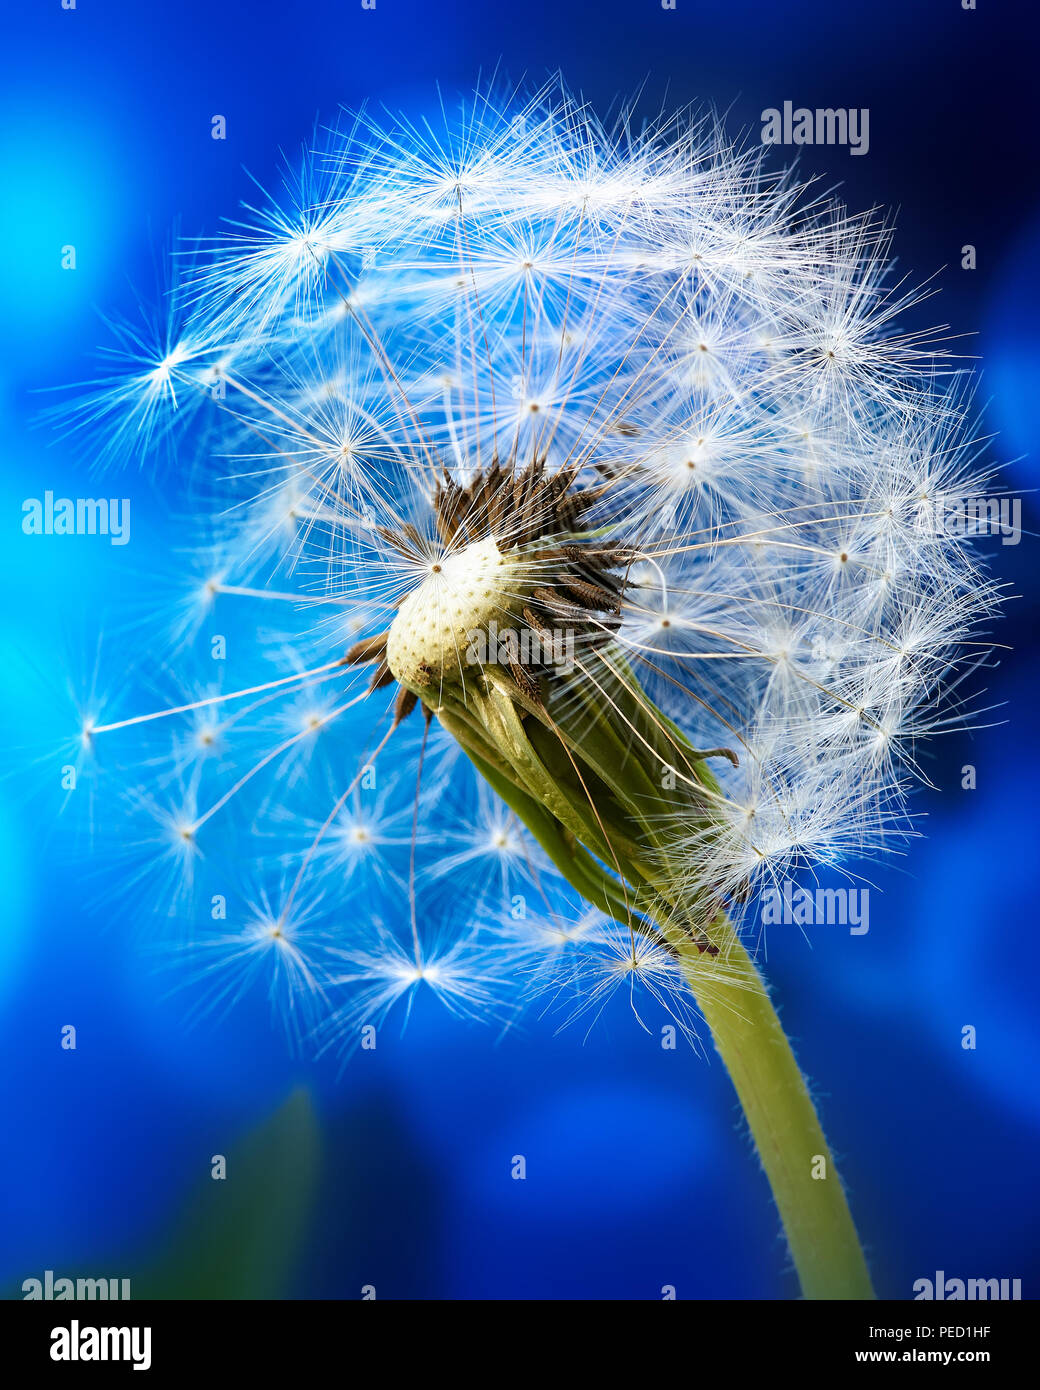 Macro Of A Dandelion On The Blue Abstract Background